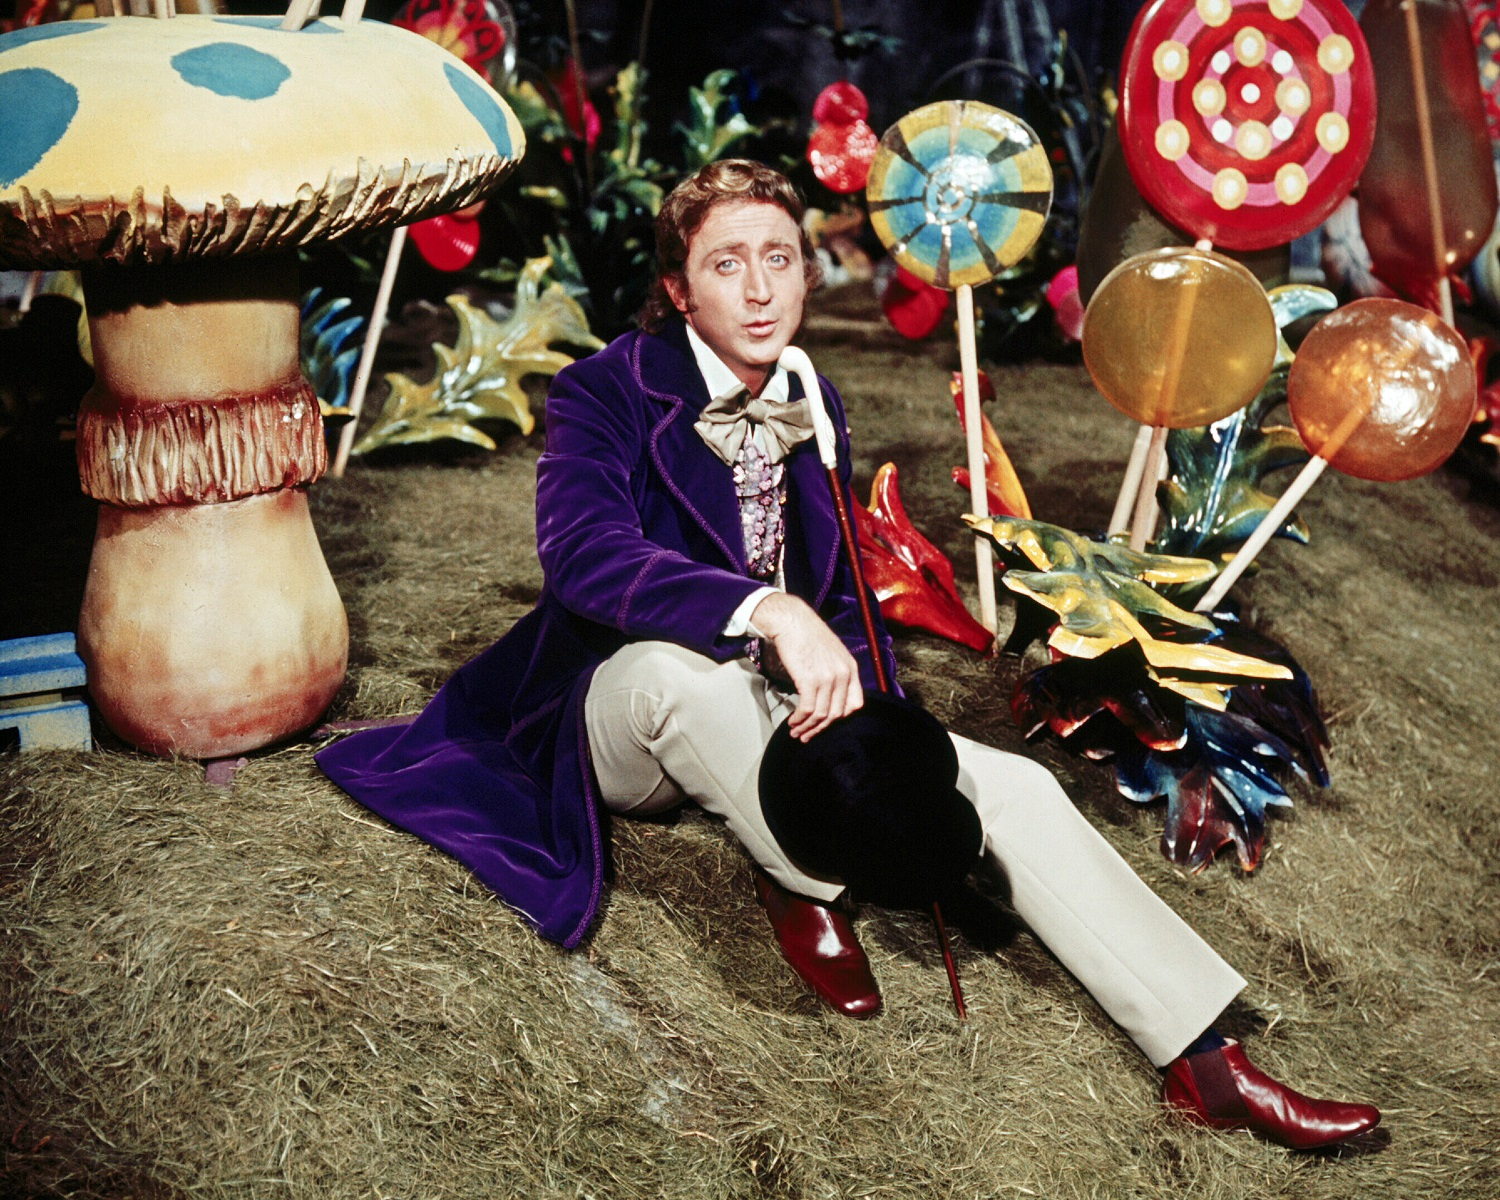 Gene Wilder as Willy Wonka in the film Willy Wonka & the Chocolate Factory